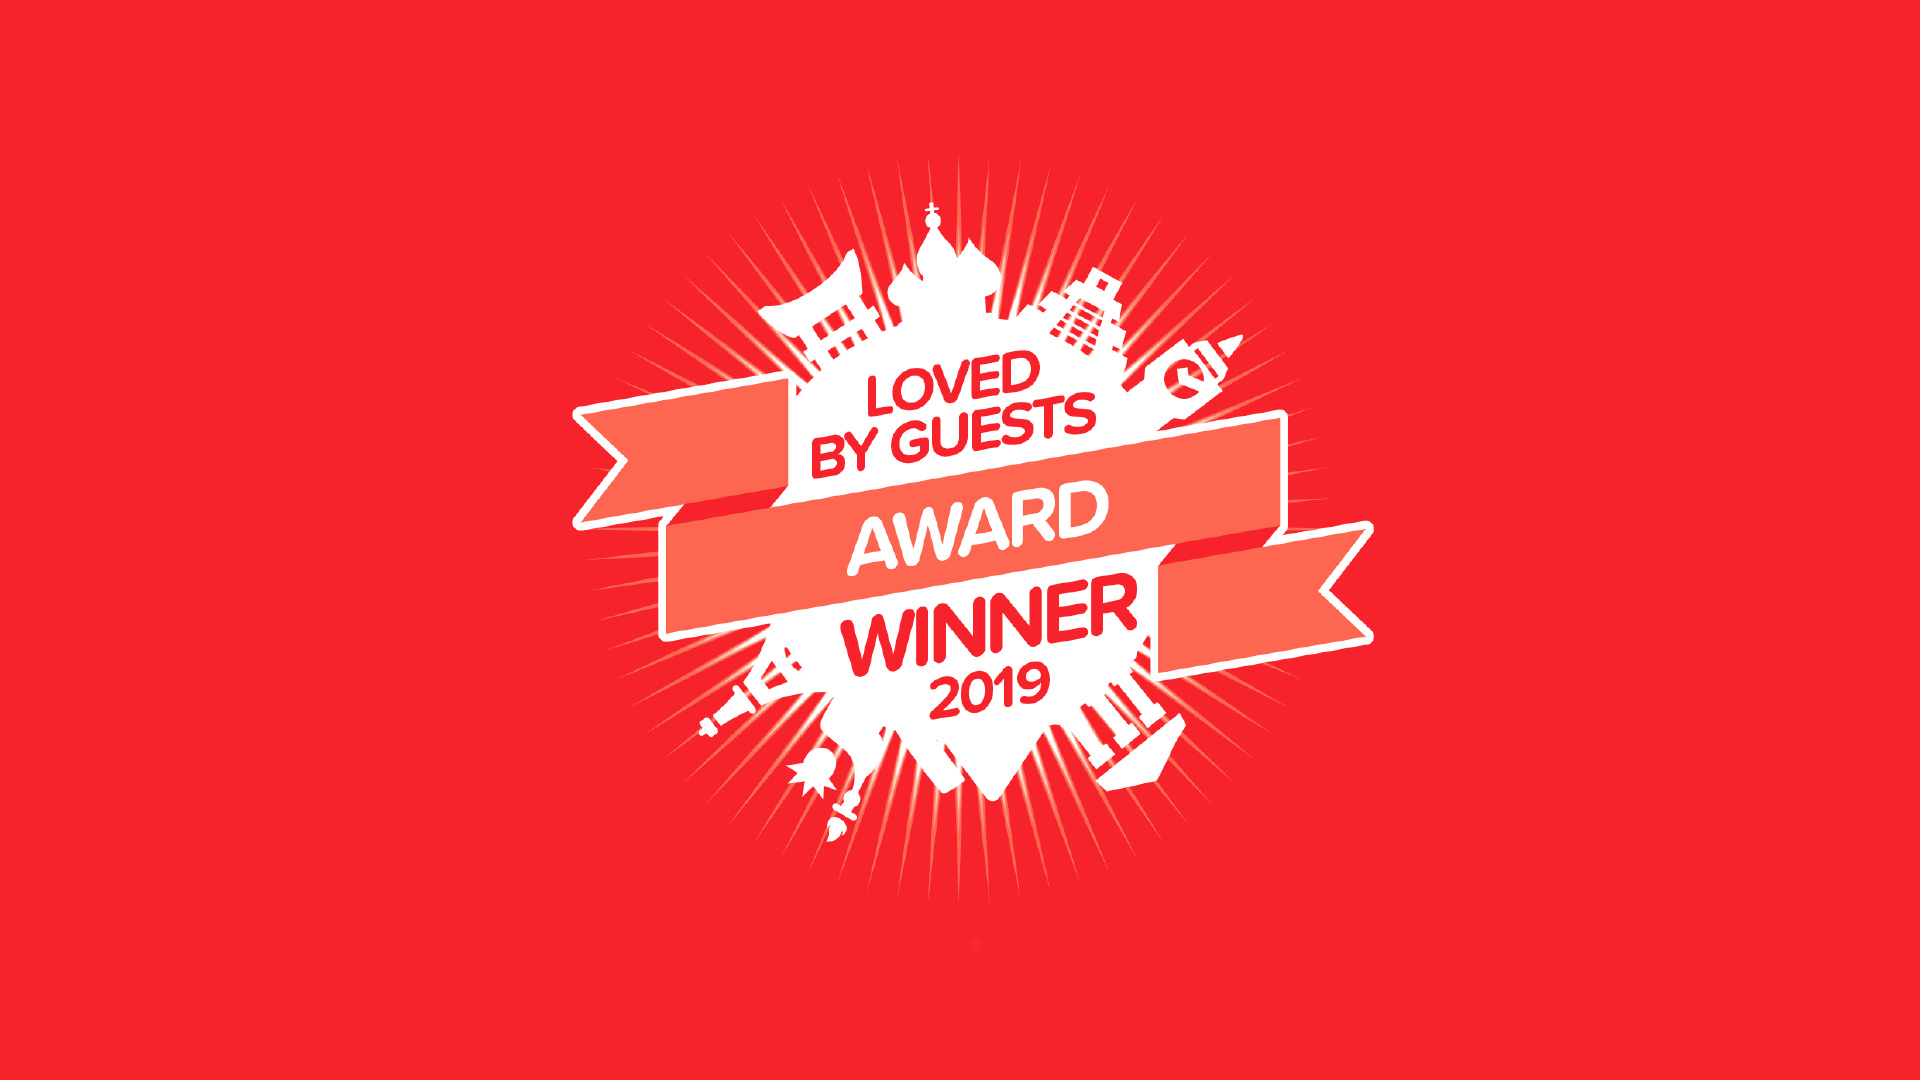 ya-somos-ganadores-del-loved-by-guests-award-2019